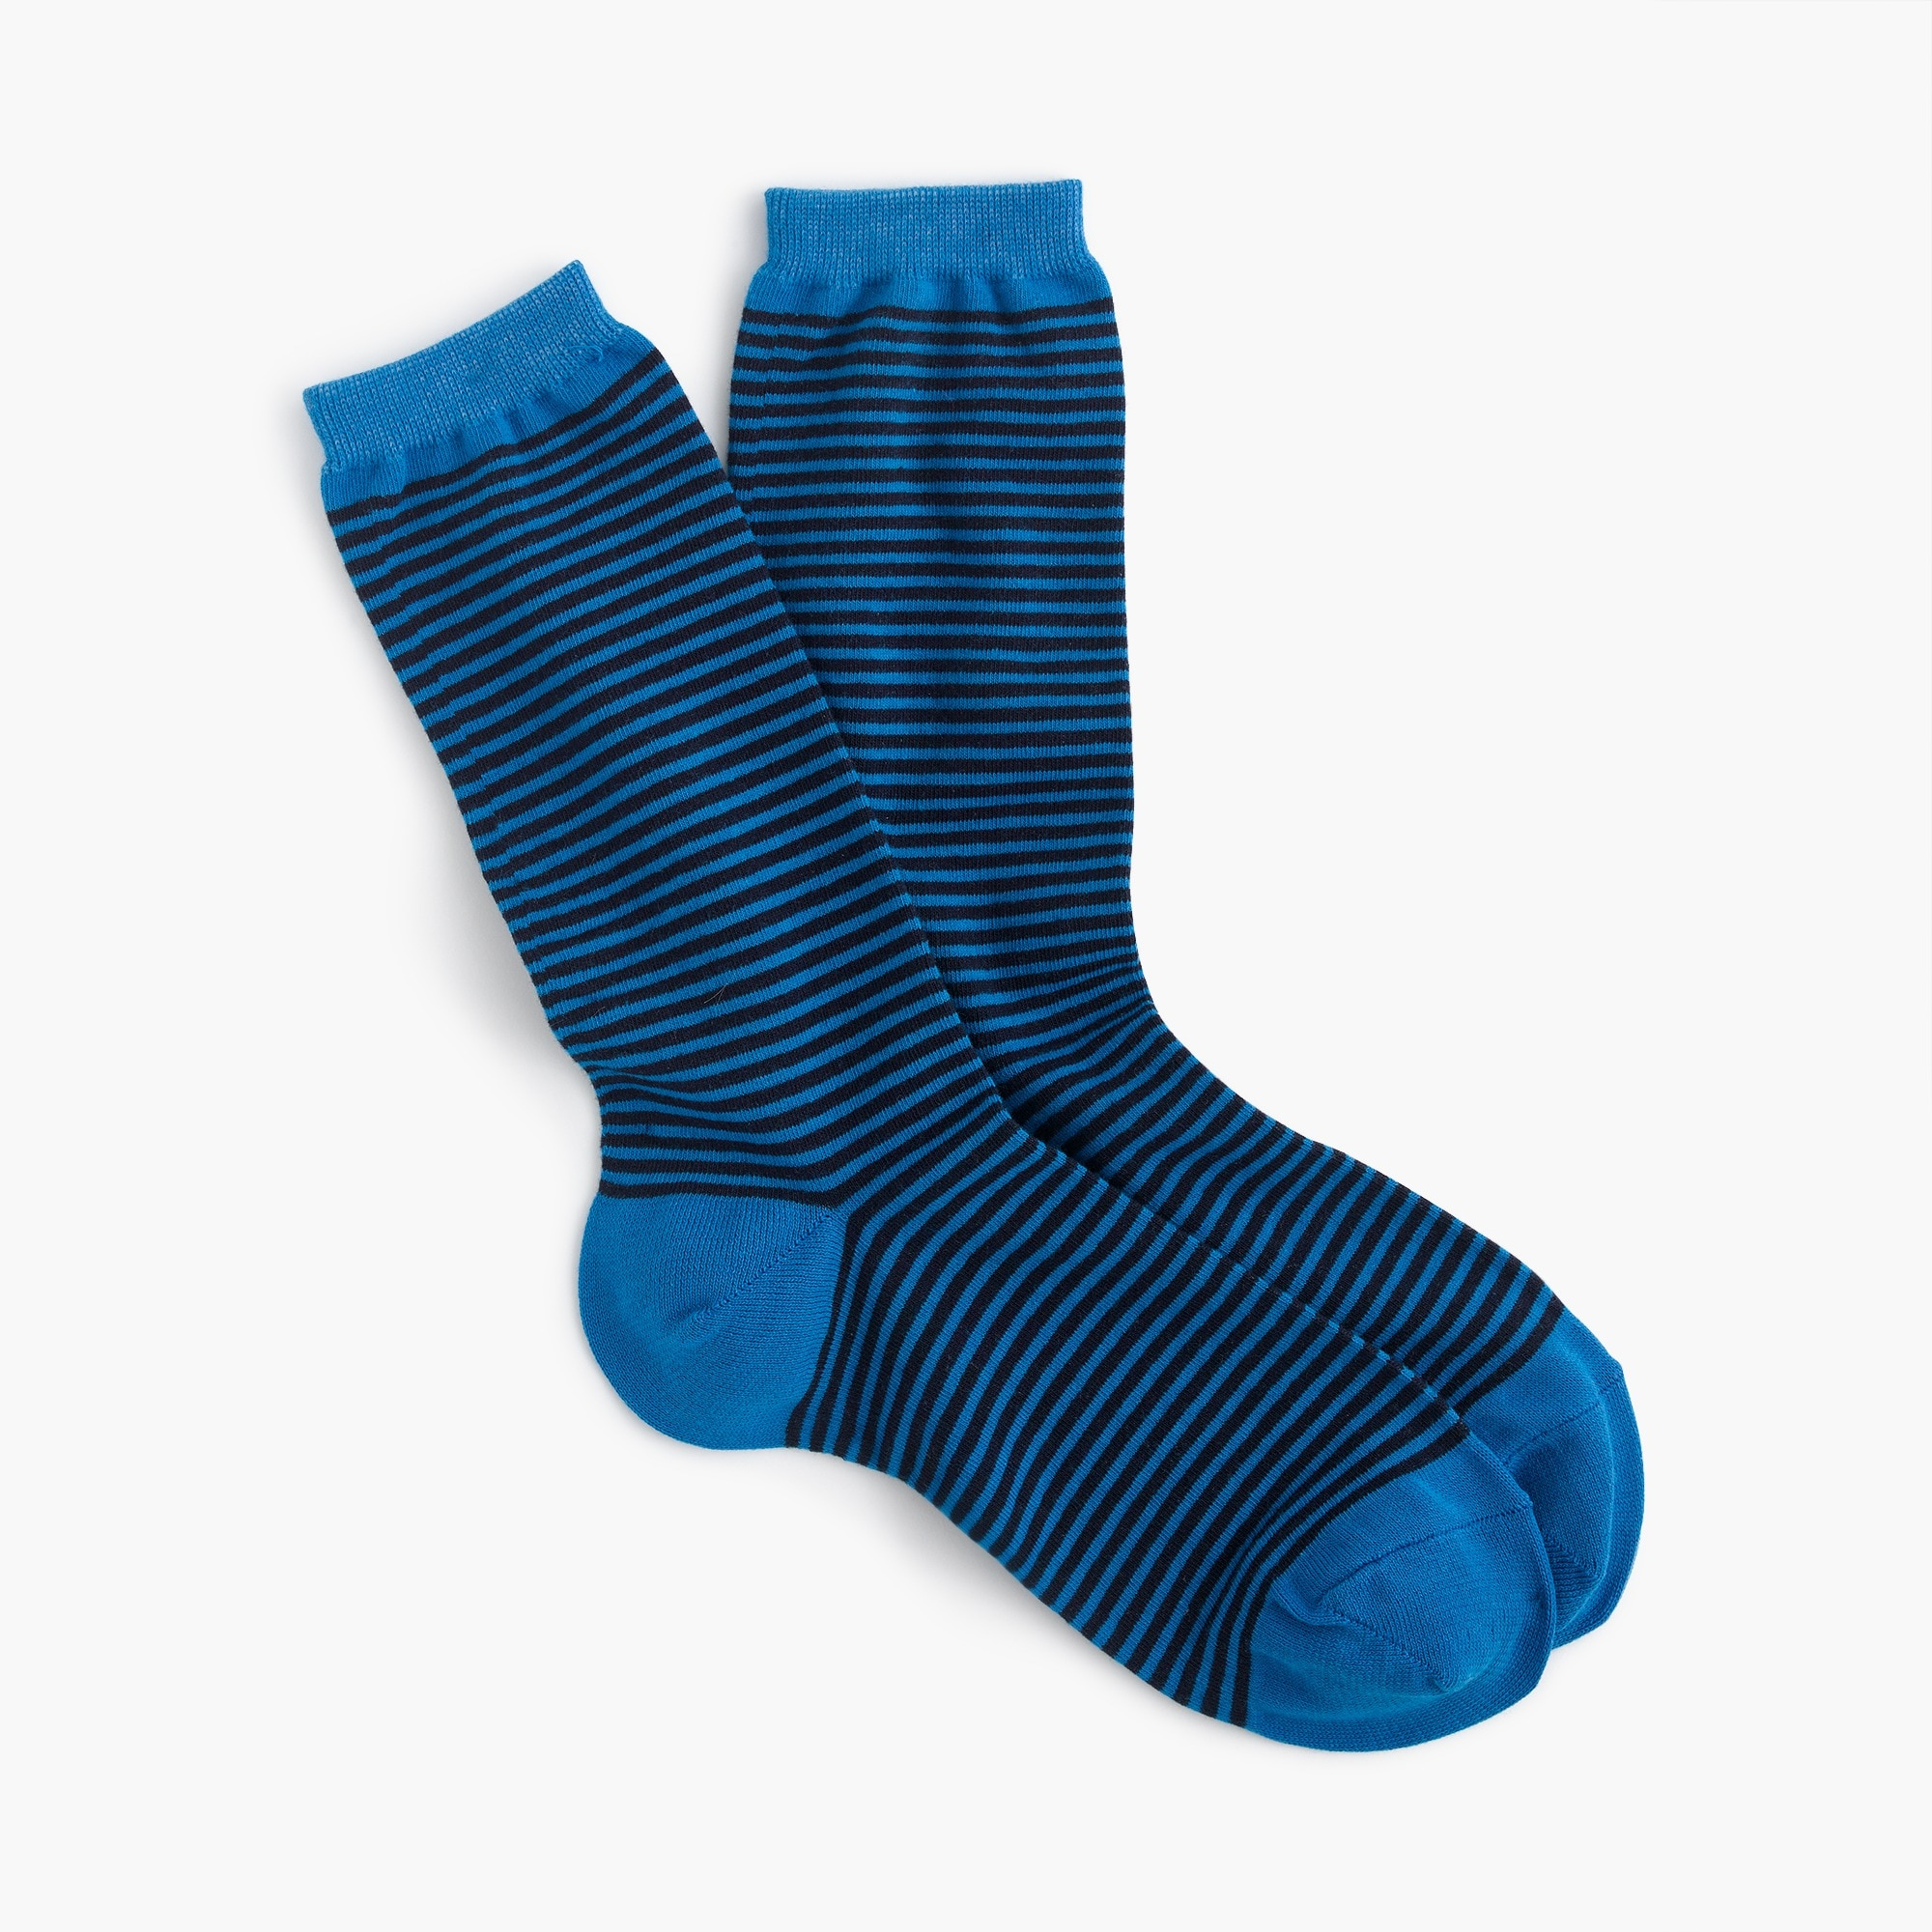 Image 1 for Trouser socks in thin stripes